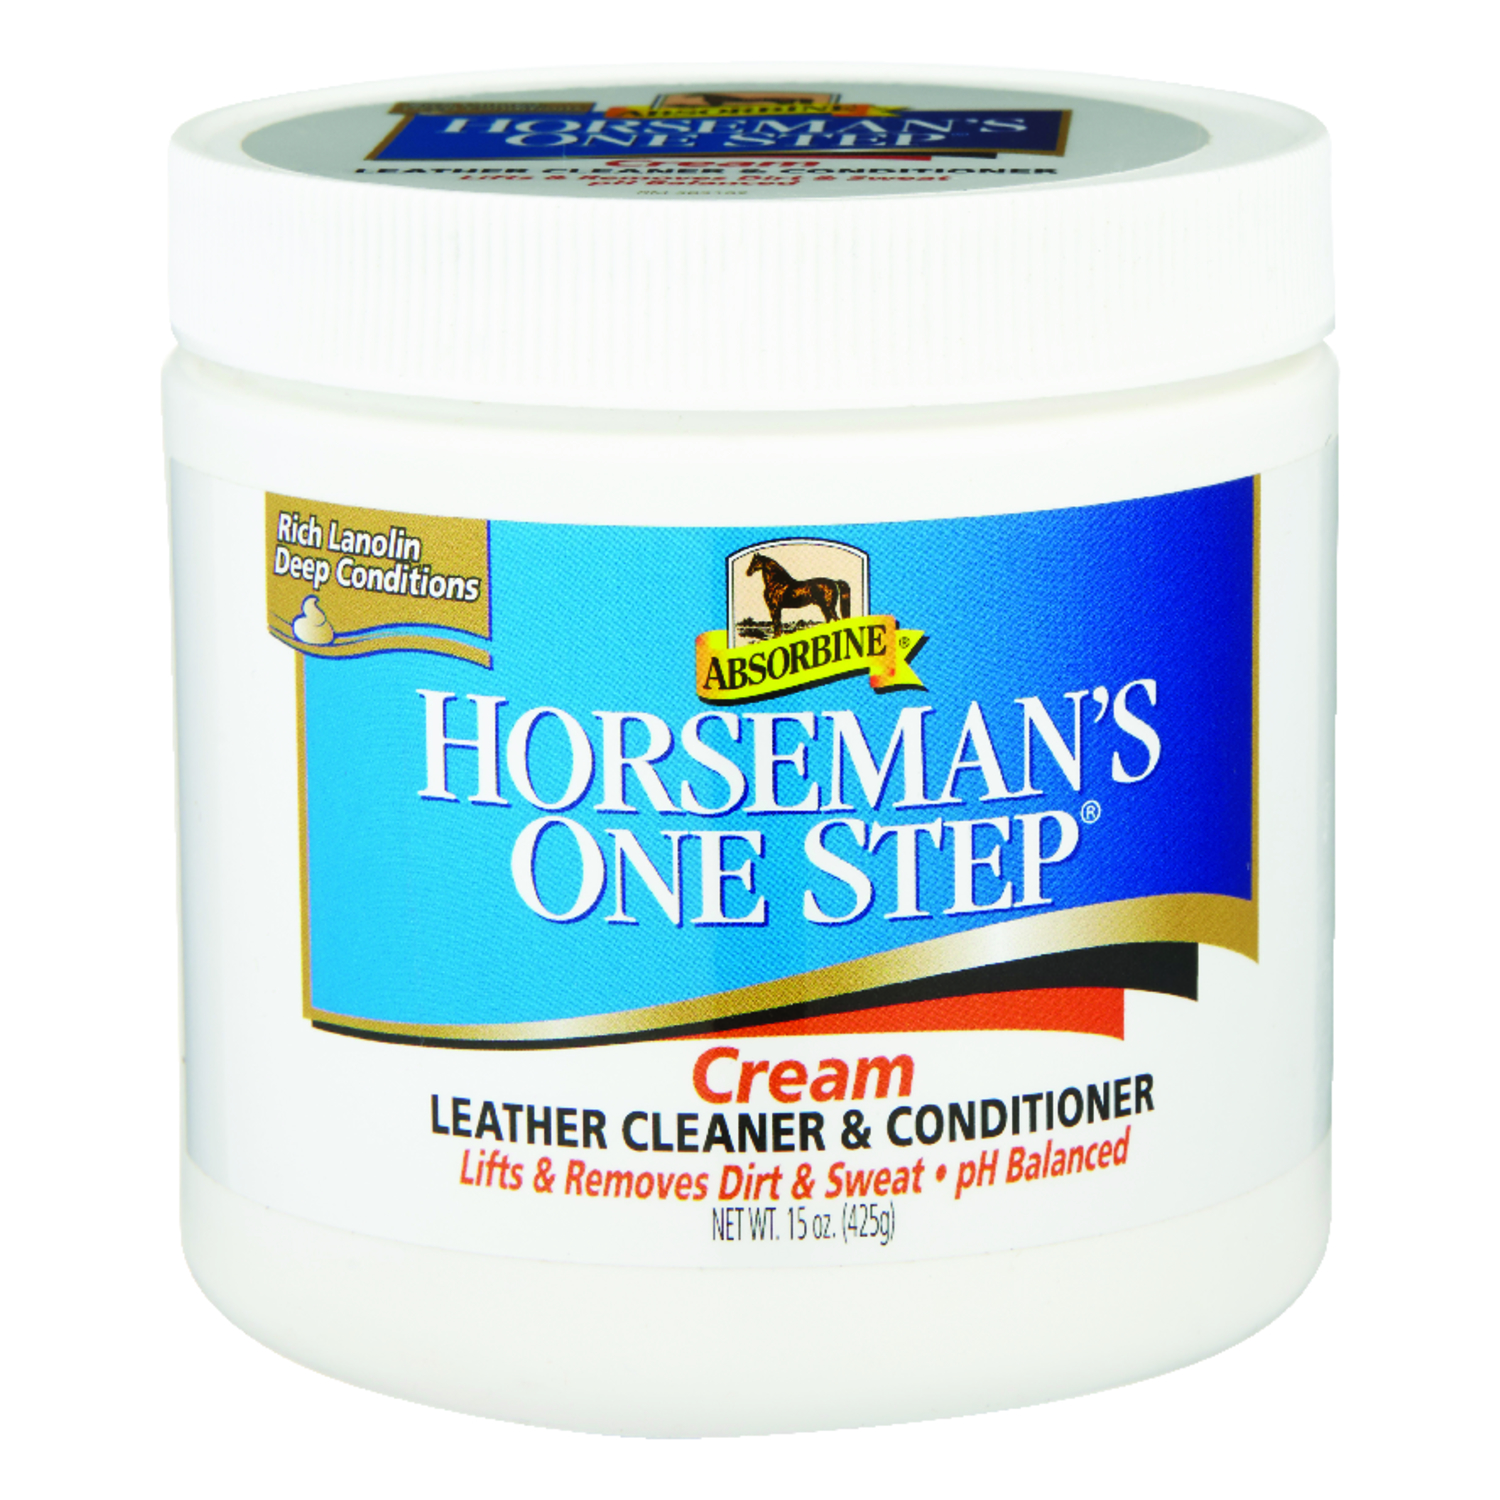 Horseman's  One Step  Harness Cleaner and Conditioner